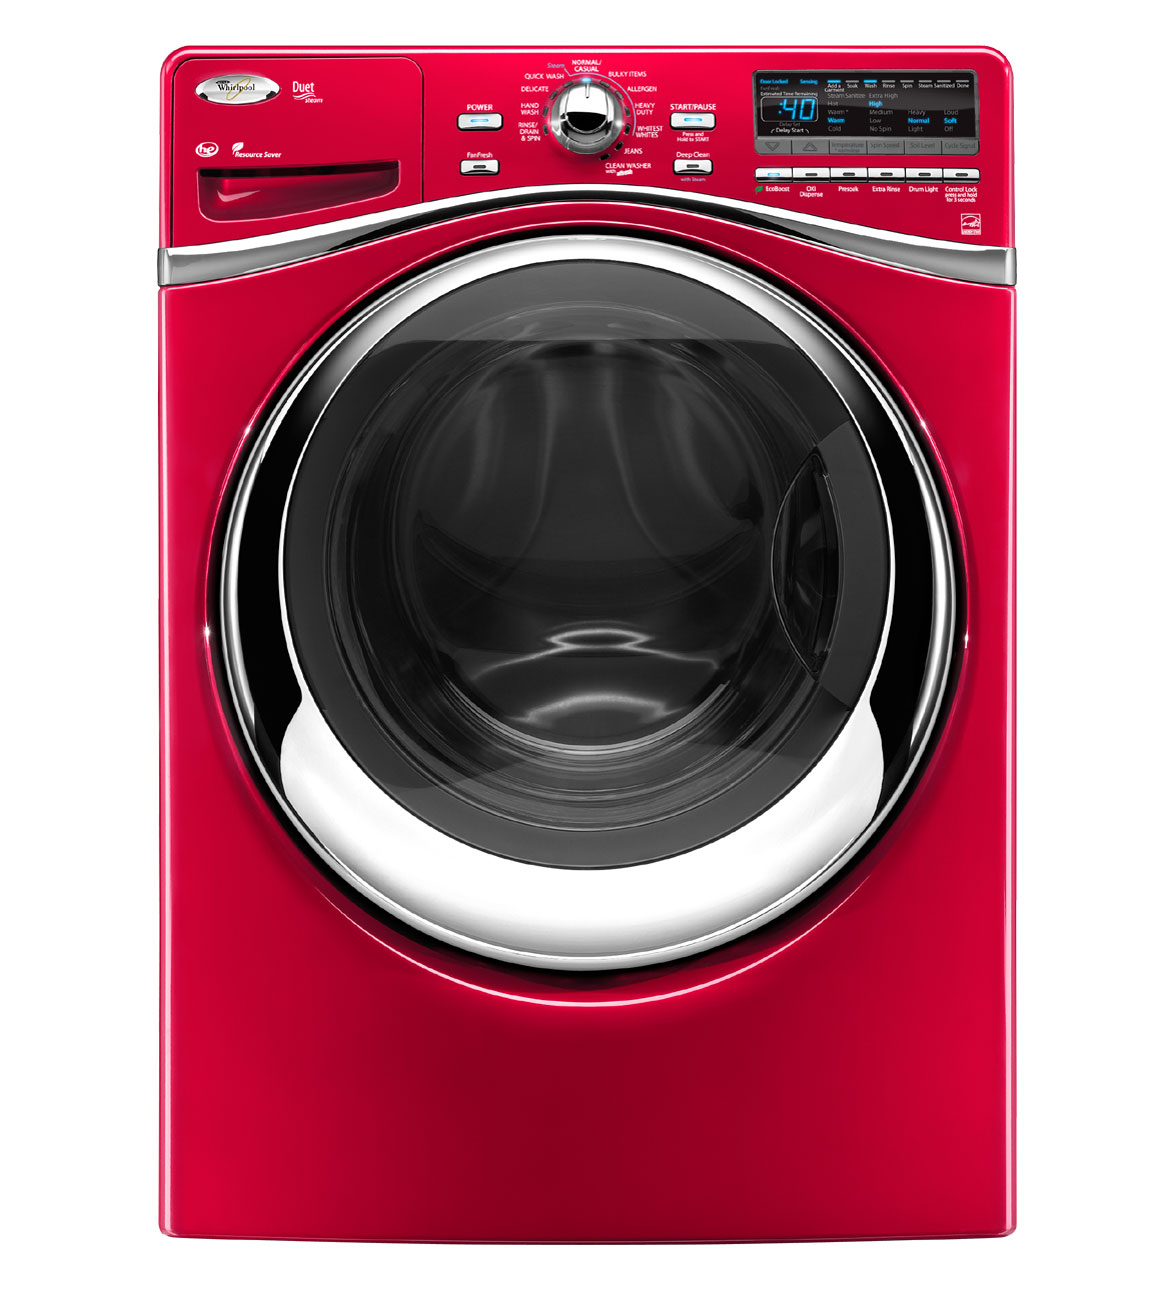 Clothes Washer And Dryer Maintenance Houstonhandyman Com